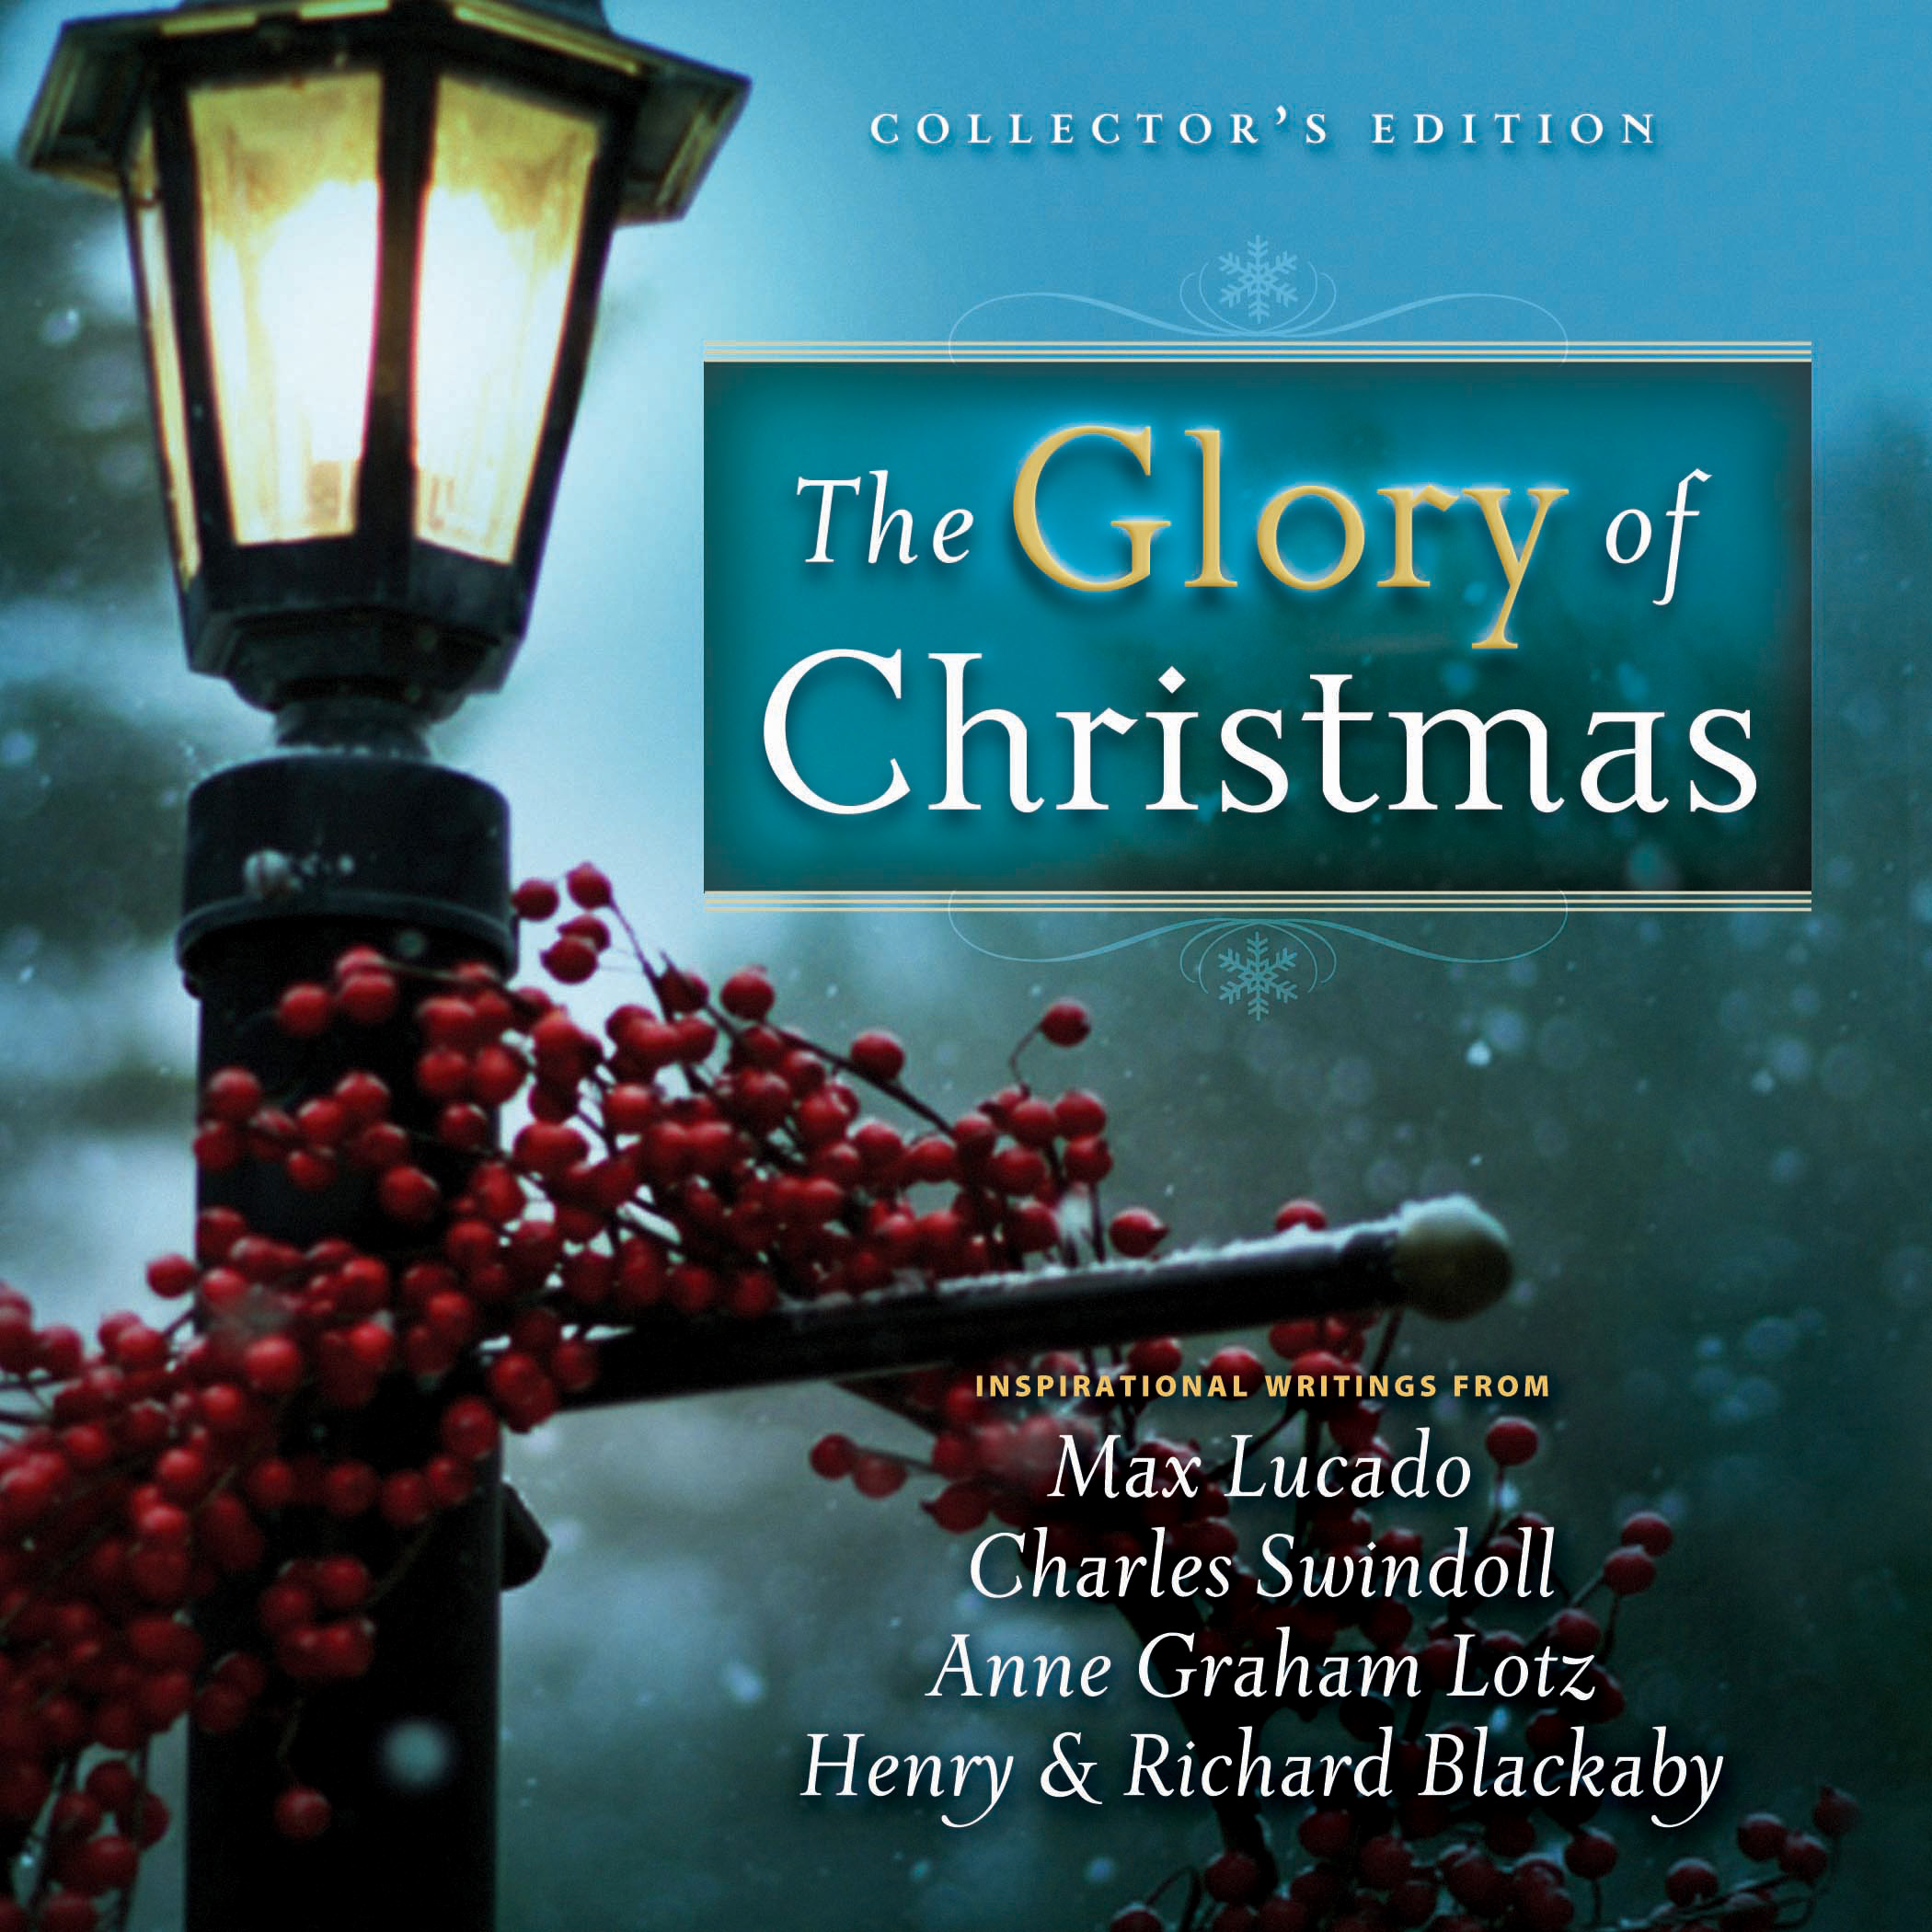 Christmas Tree In The Bible Scripture: The Glory Of Christmas: Collector's Edition By Max Lucado